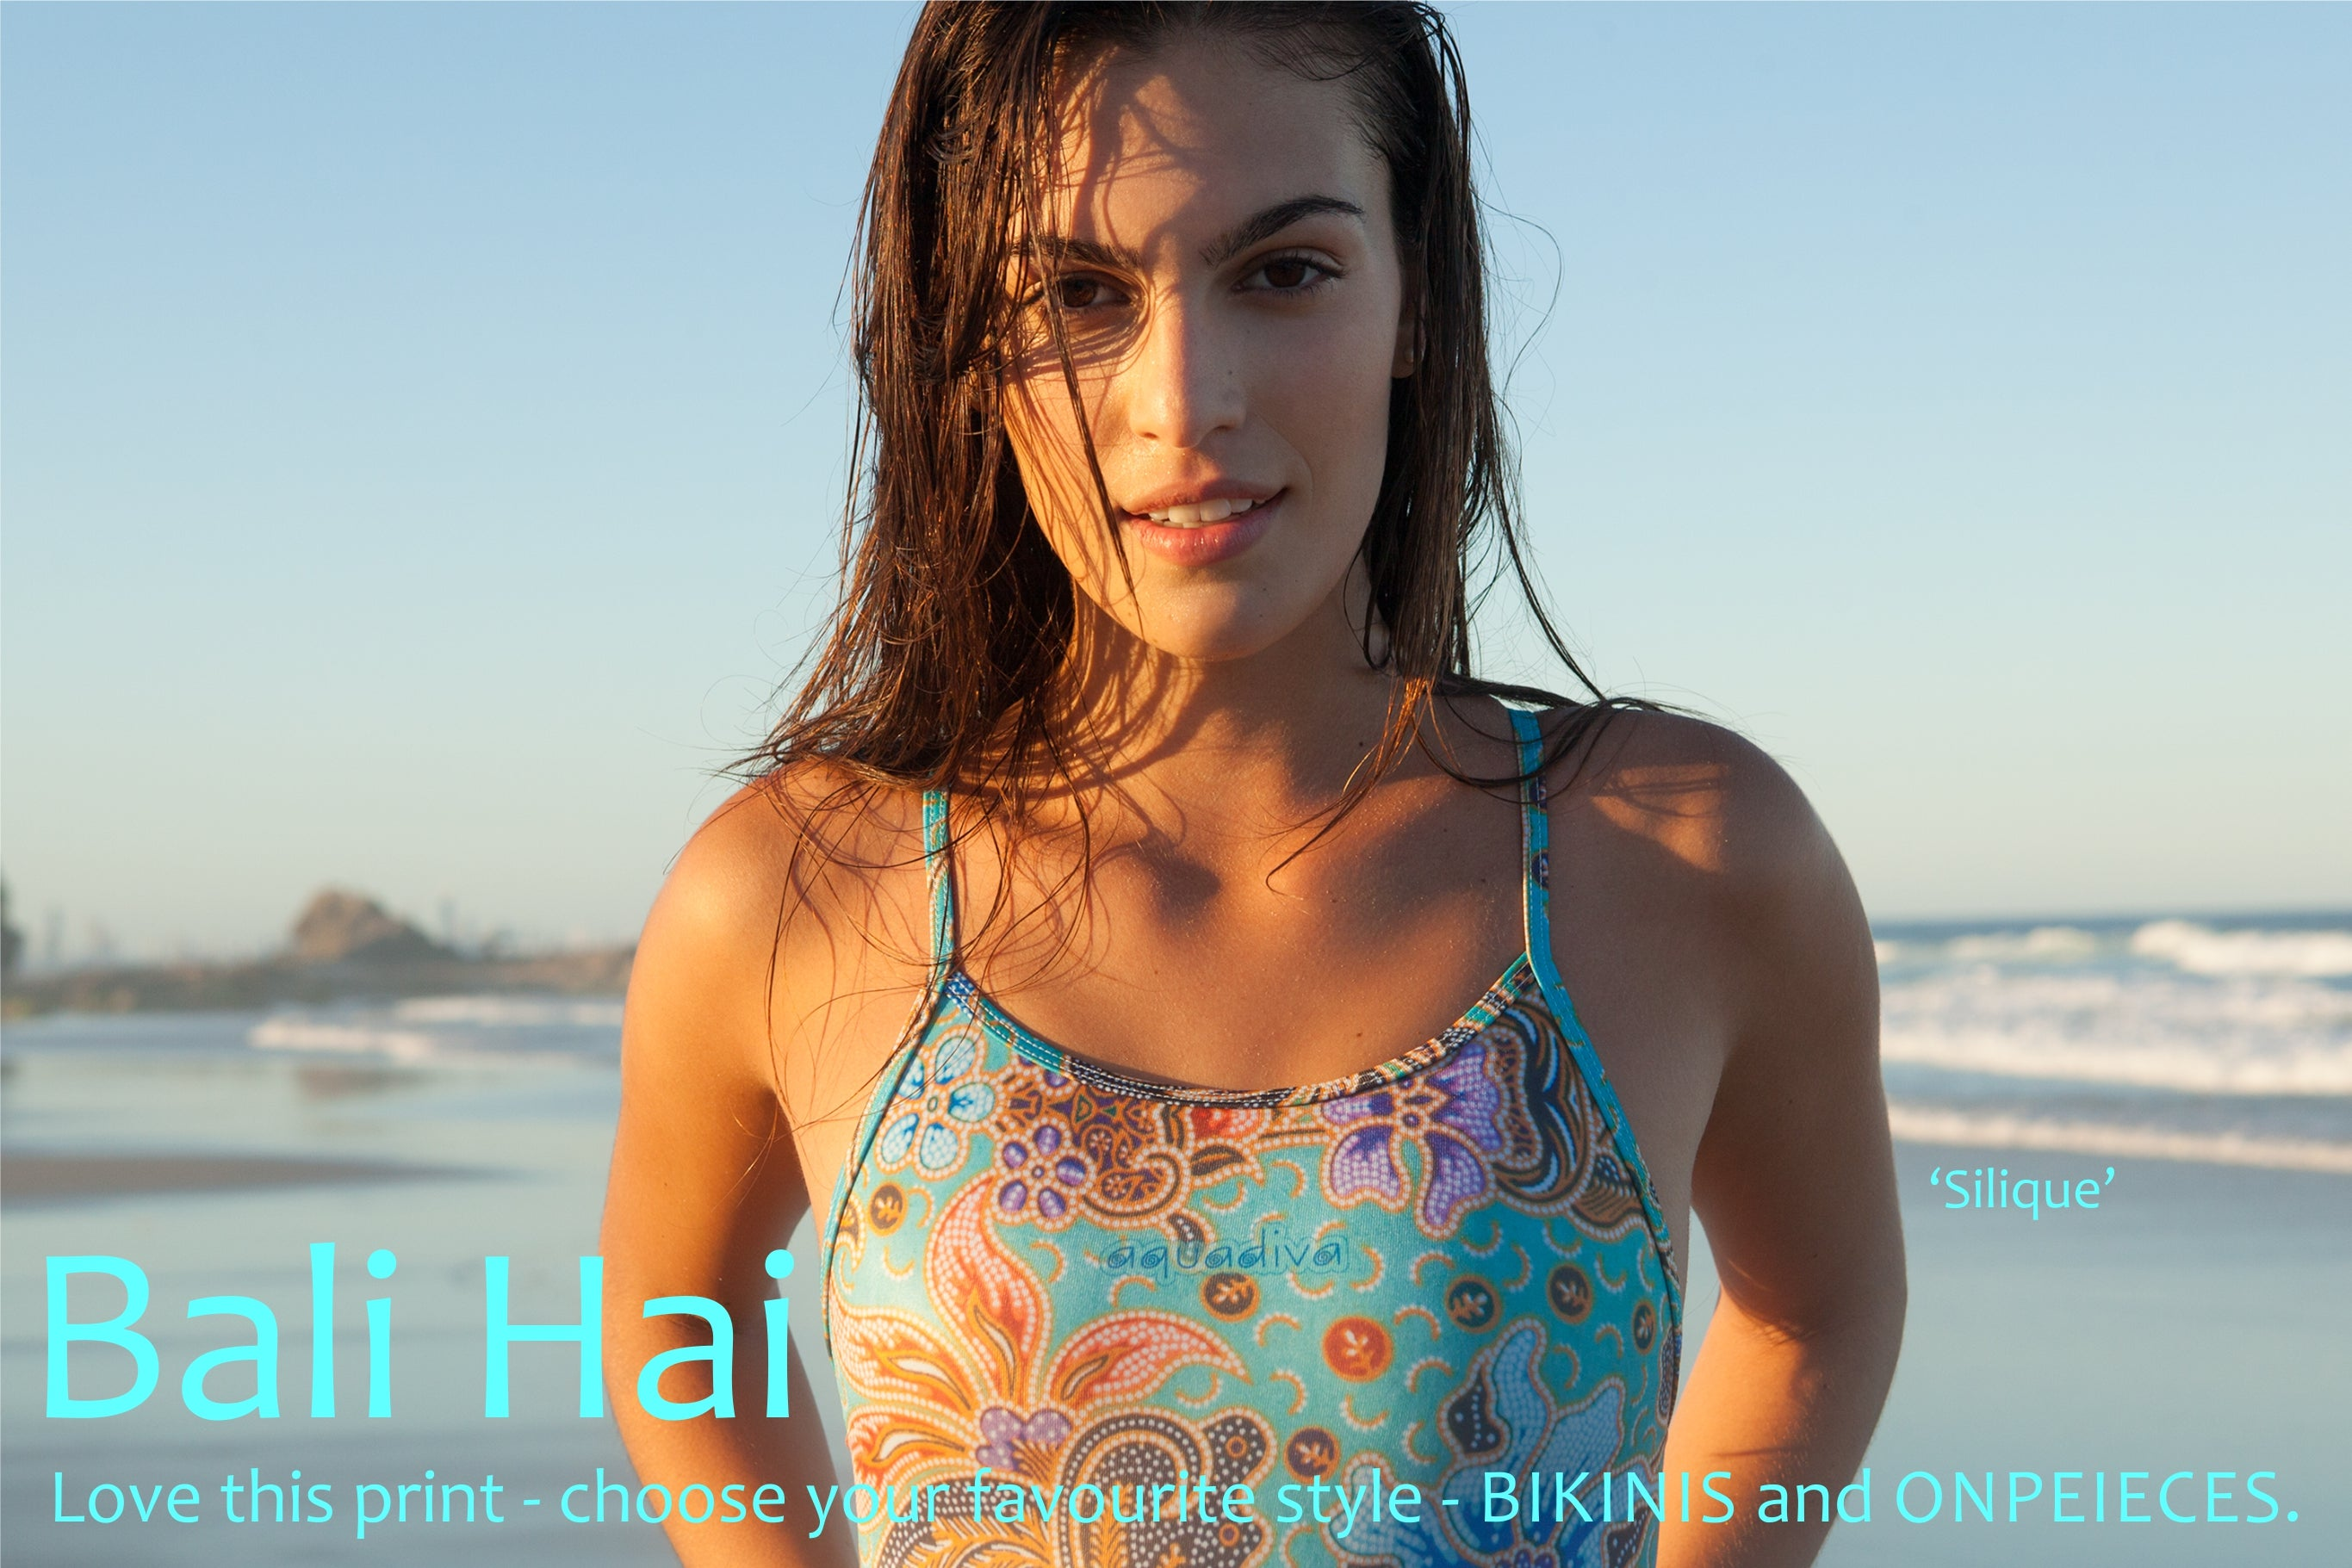 Bali Hai - all styles in BIKINIS and ONEPIECES